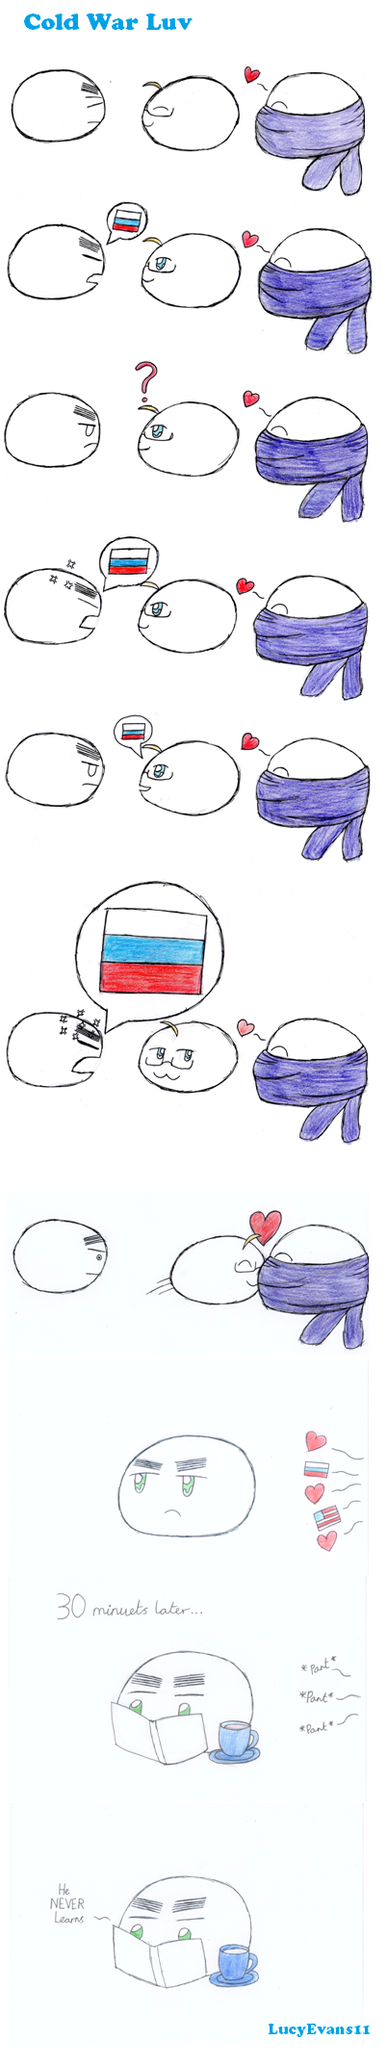 Cold War Luv by LucyEvans11